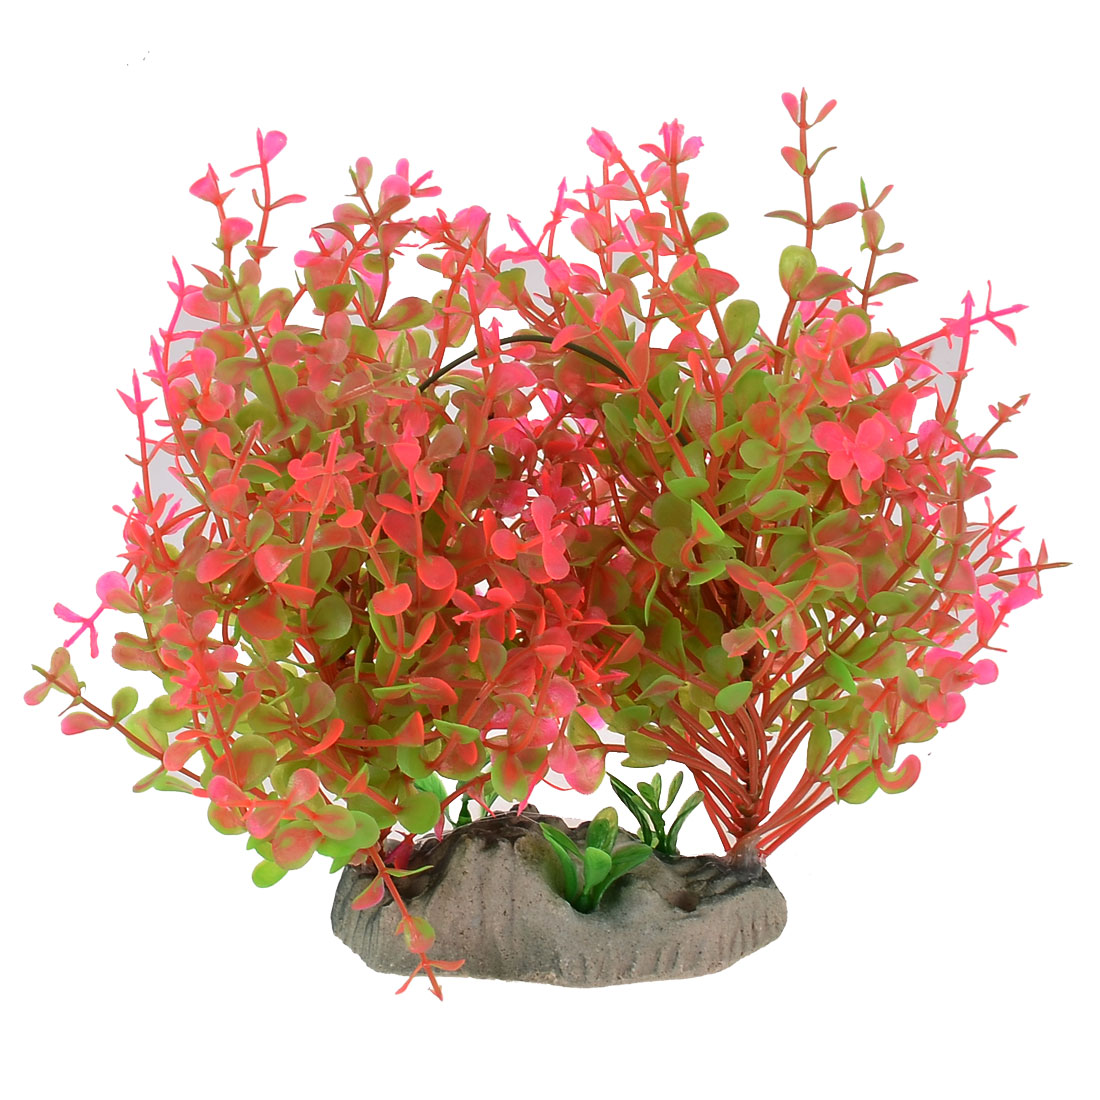 Aquarium Emulation Plastic Underwater Grass Plants Pink Green Round Leaf 14.5cm High